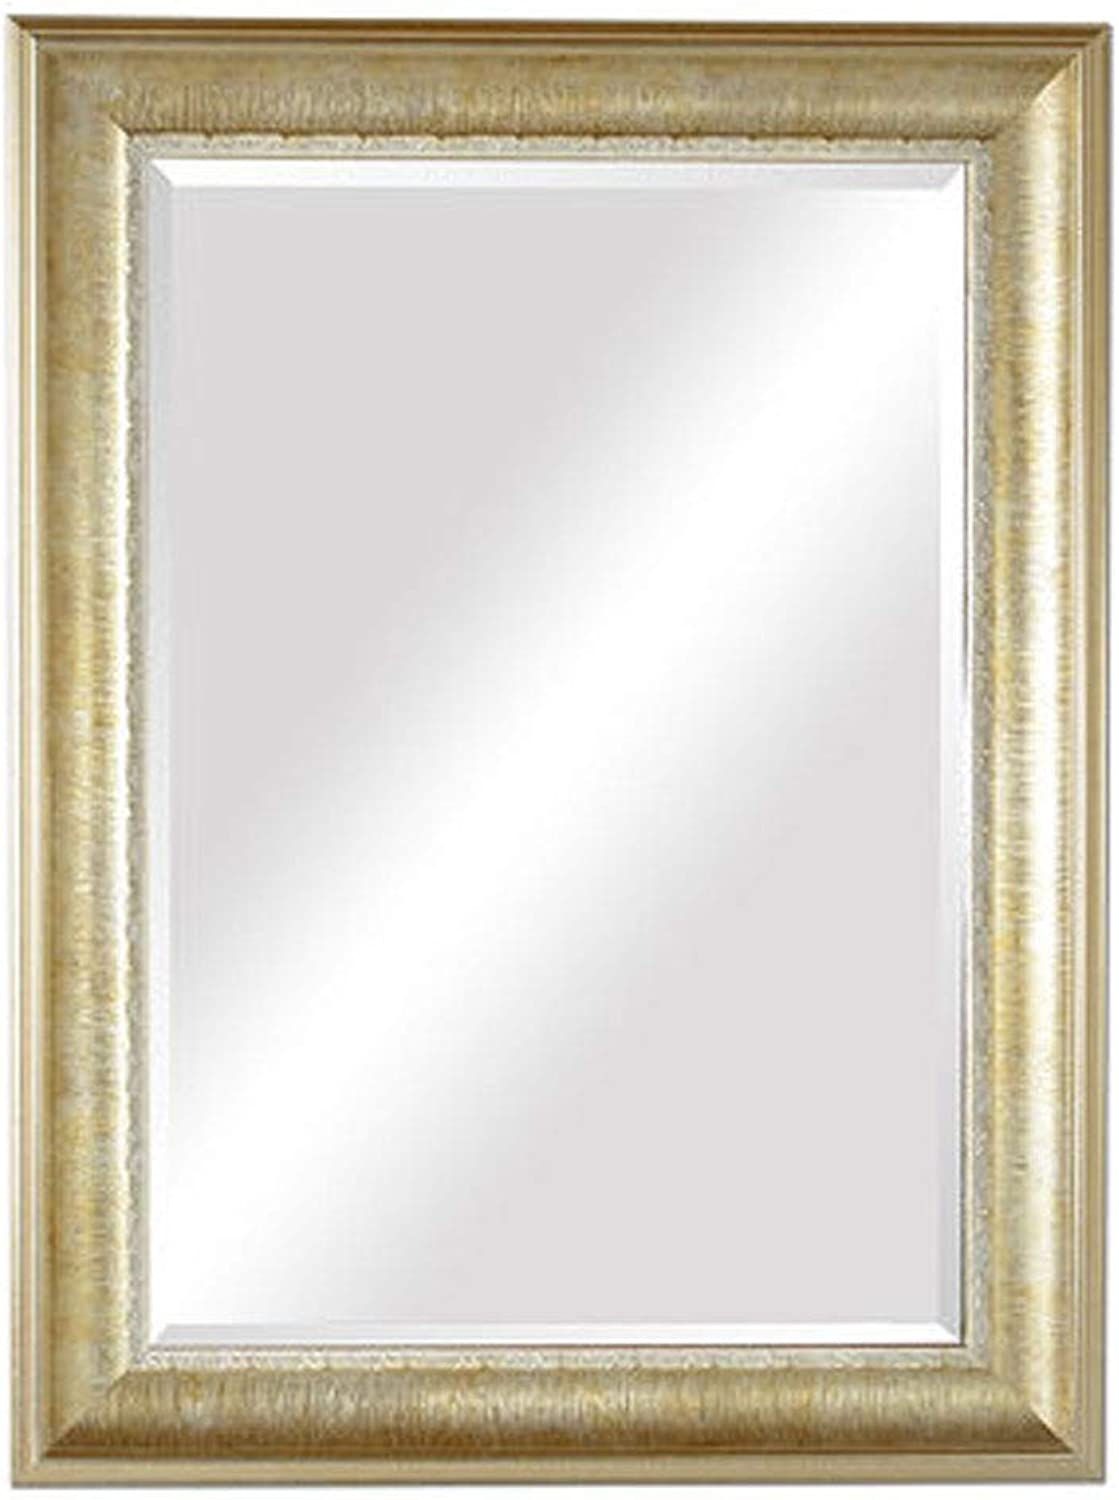 Large Rectangle Mirror Beautiful gold Wall Mirror Handcrafted Accent Mirror Hanging Mirror Large Wall Mirror for Bathroom & Entryway